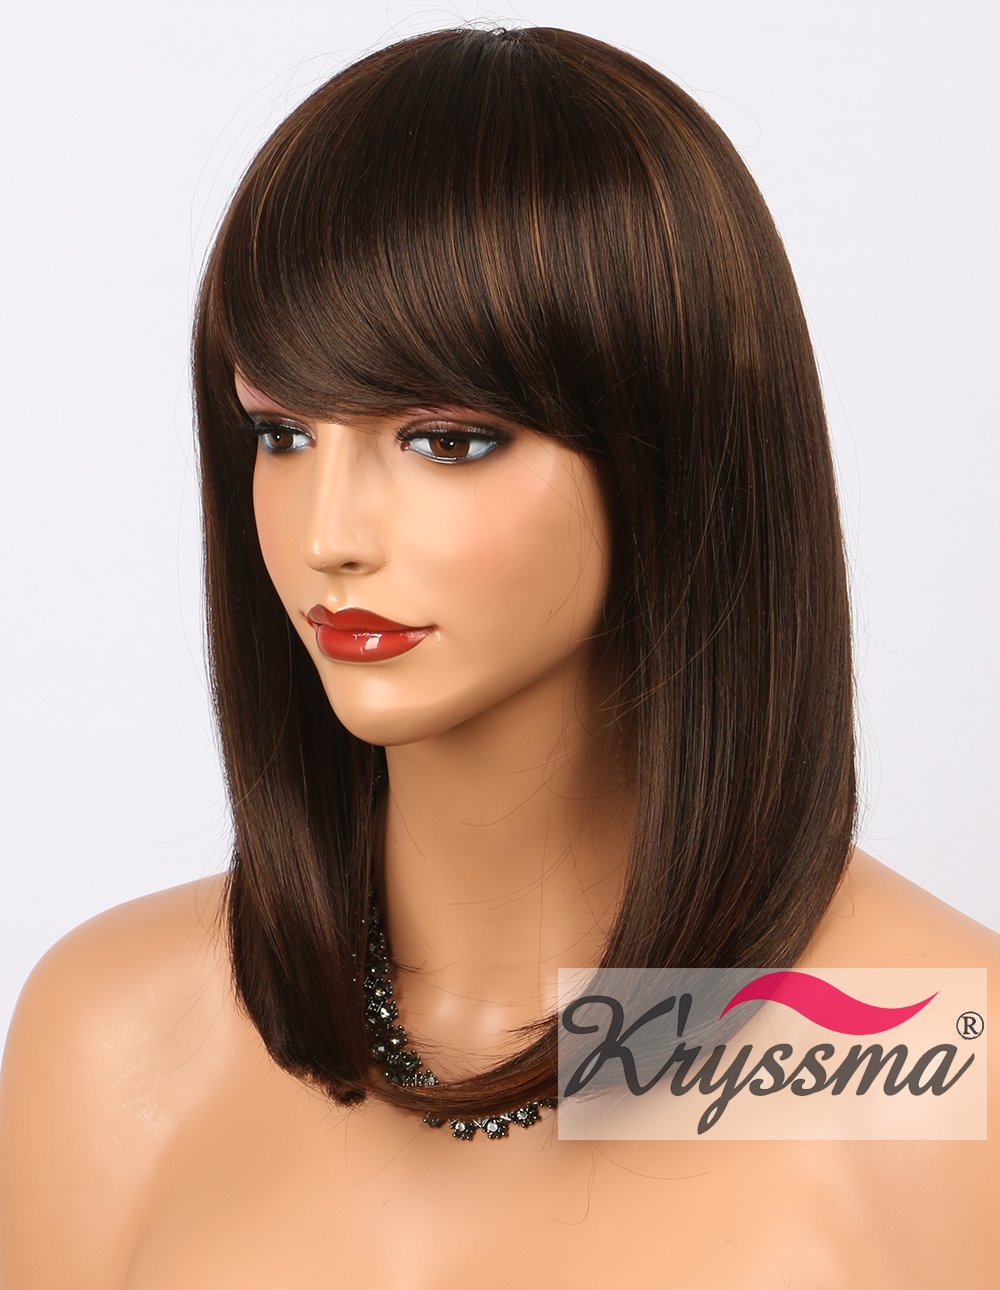 K'ryssma Bob Wig With Bangs - Natural Looking